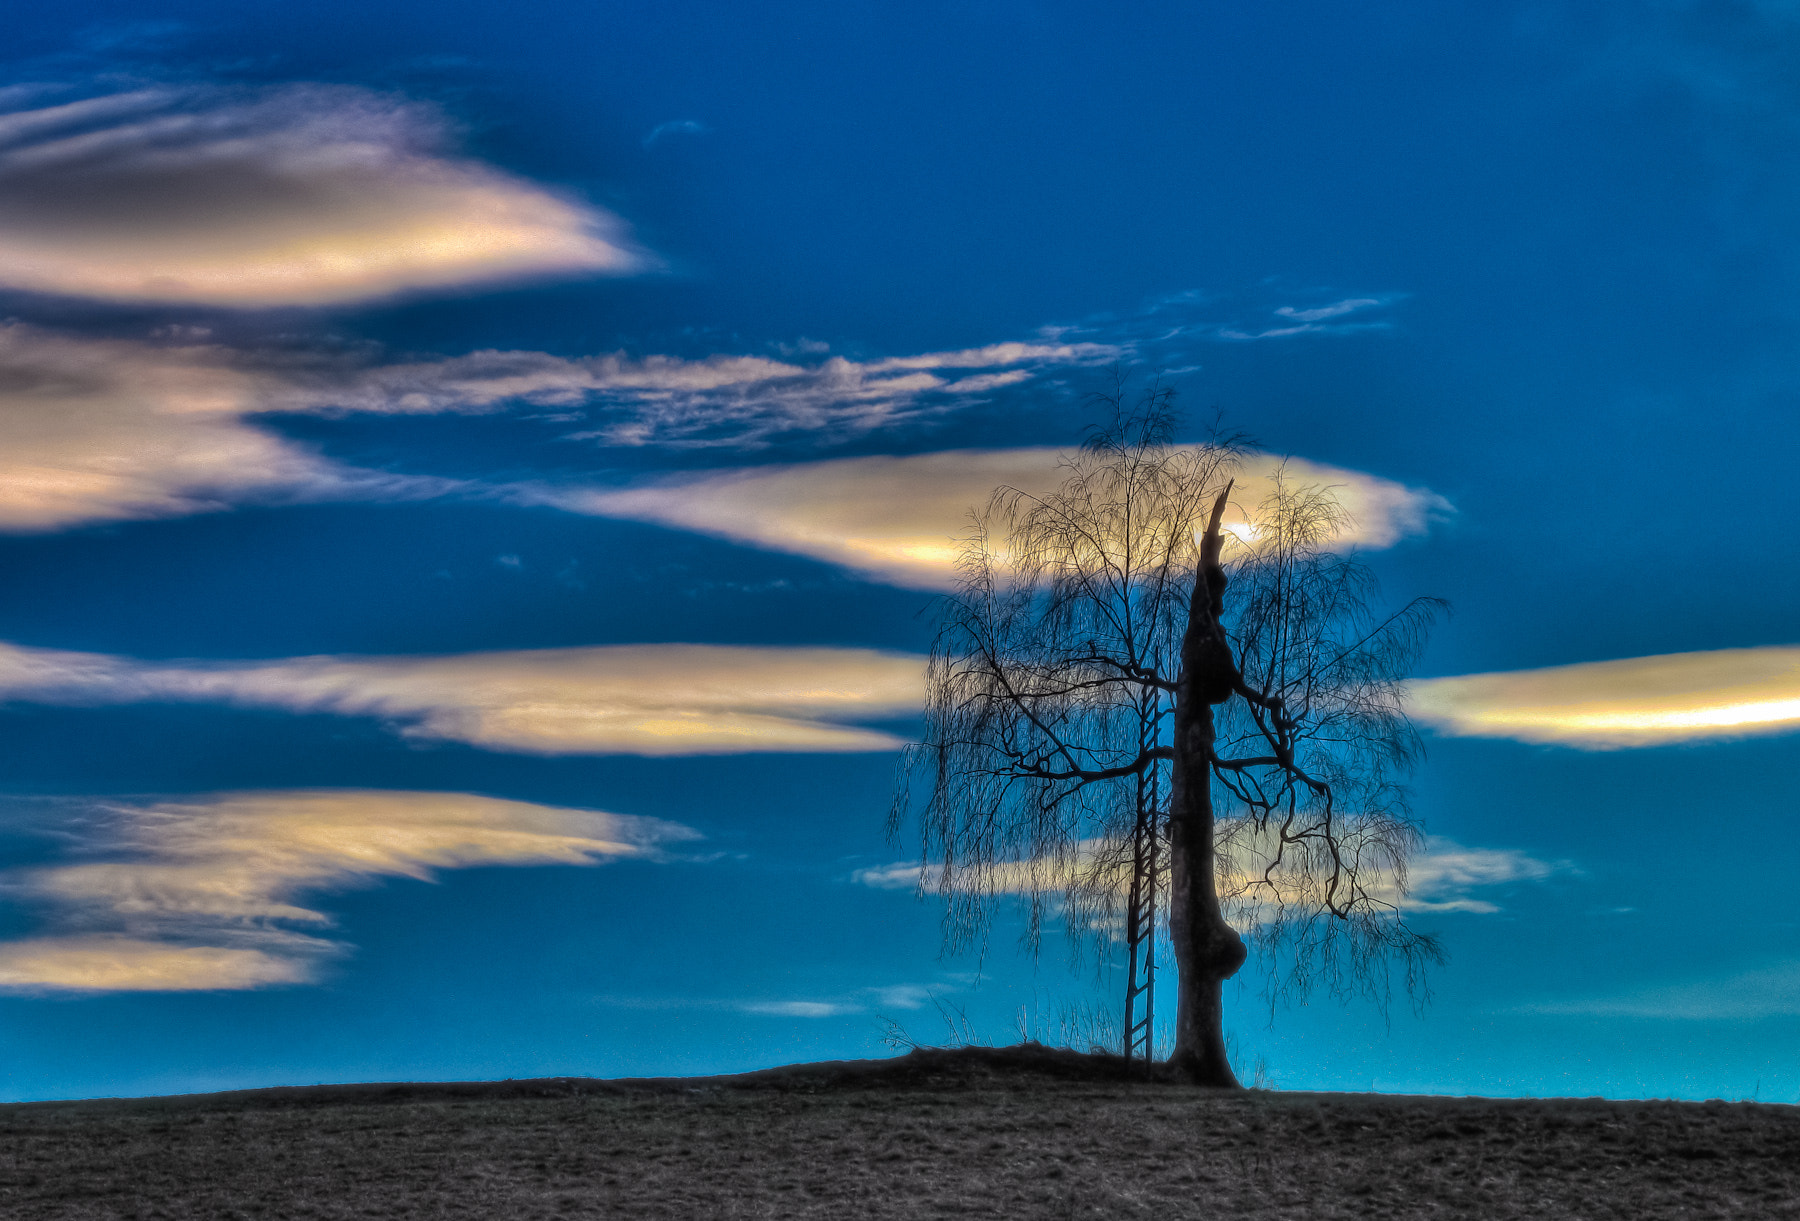 Photograph the tree by Paul Werner Suess on 500px